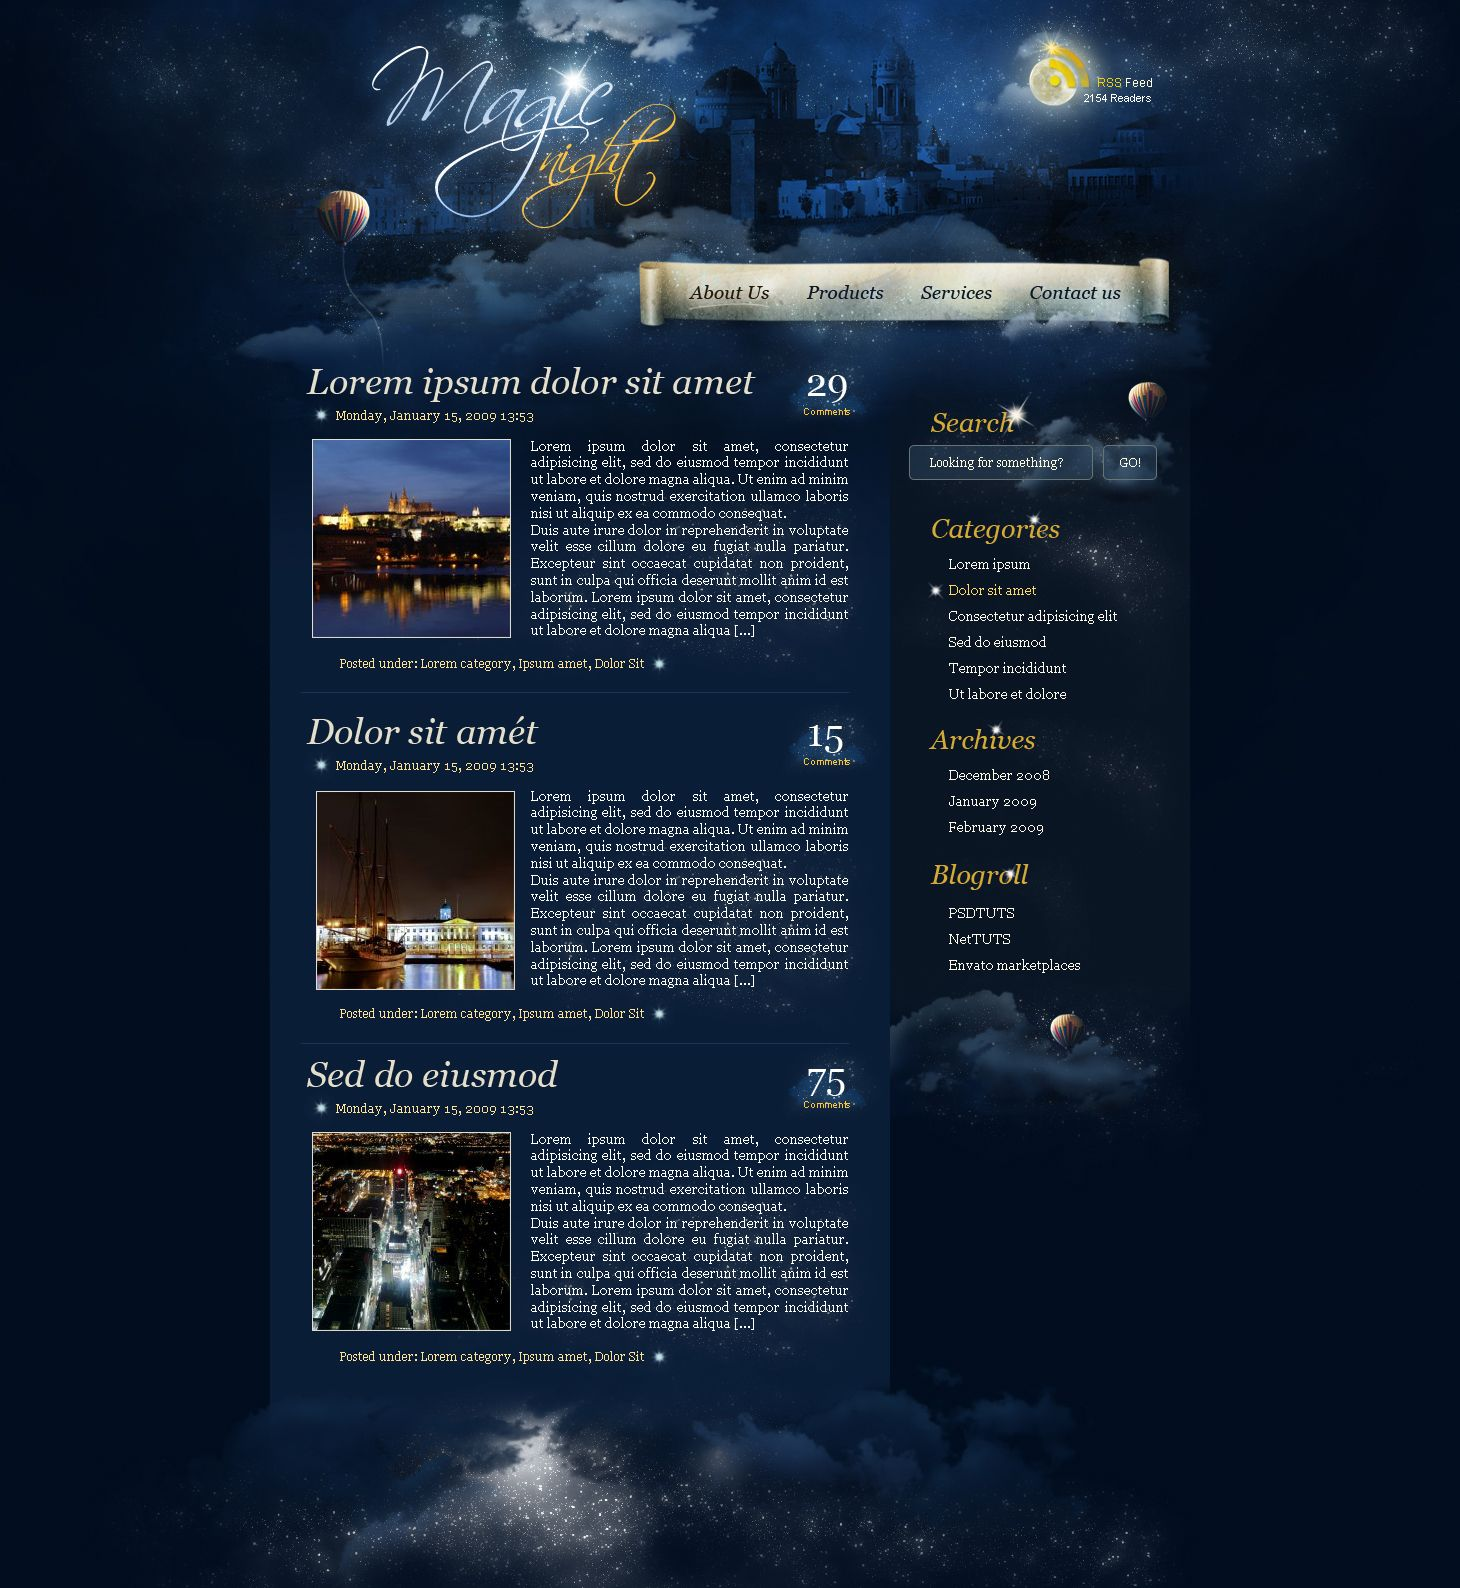 Create a magic night themed web design from scratch in photoshop 108 best photoshop web designs layout tutorials photoshop website tutorialsbrushes more baditri Gallery